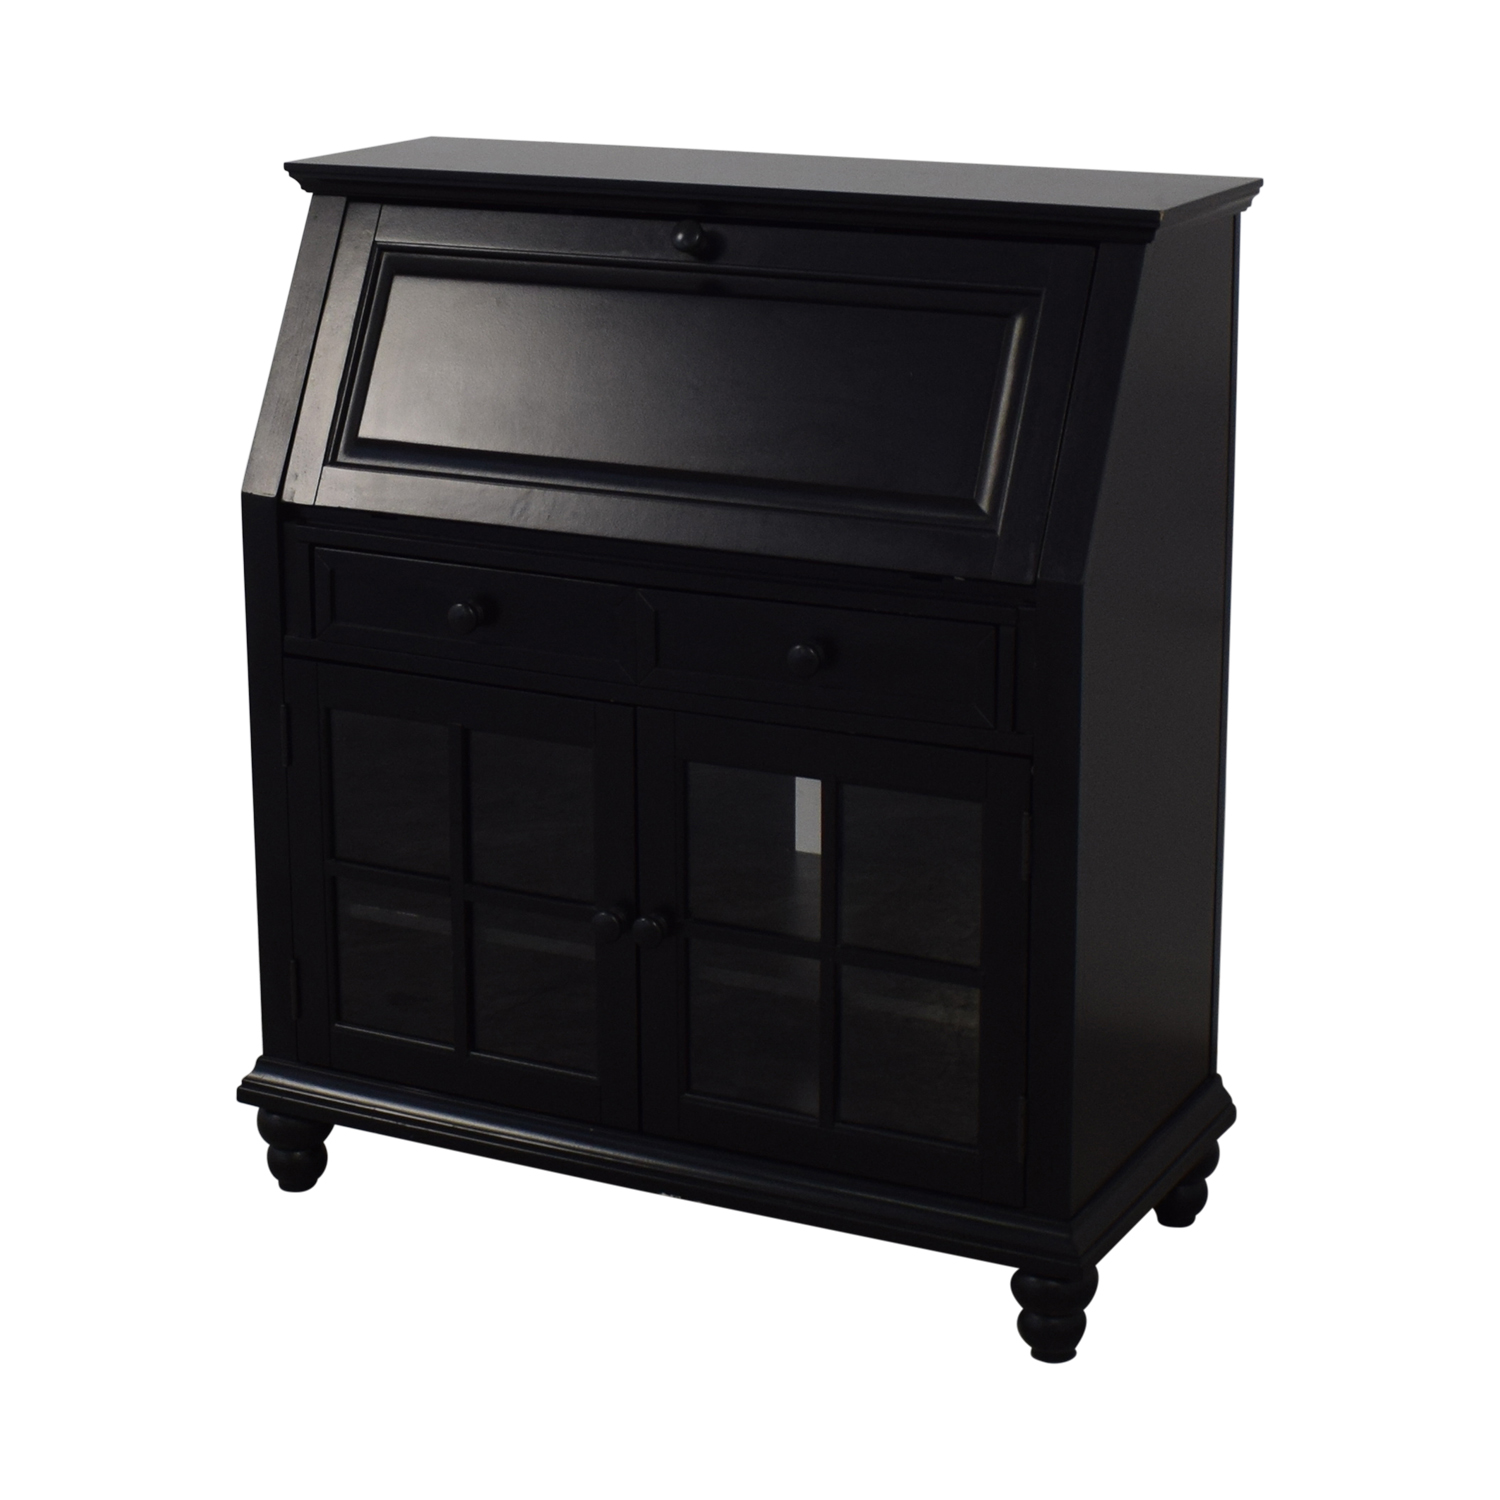 Hillsdale Furniture Hillsdale Furniture Secretary Desk coupon